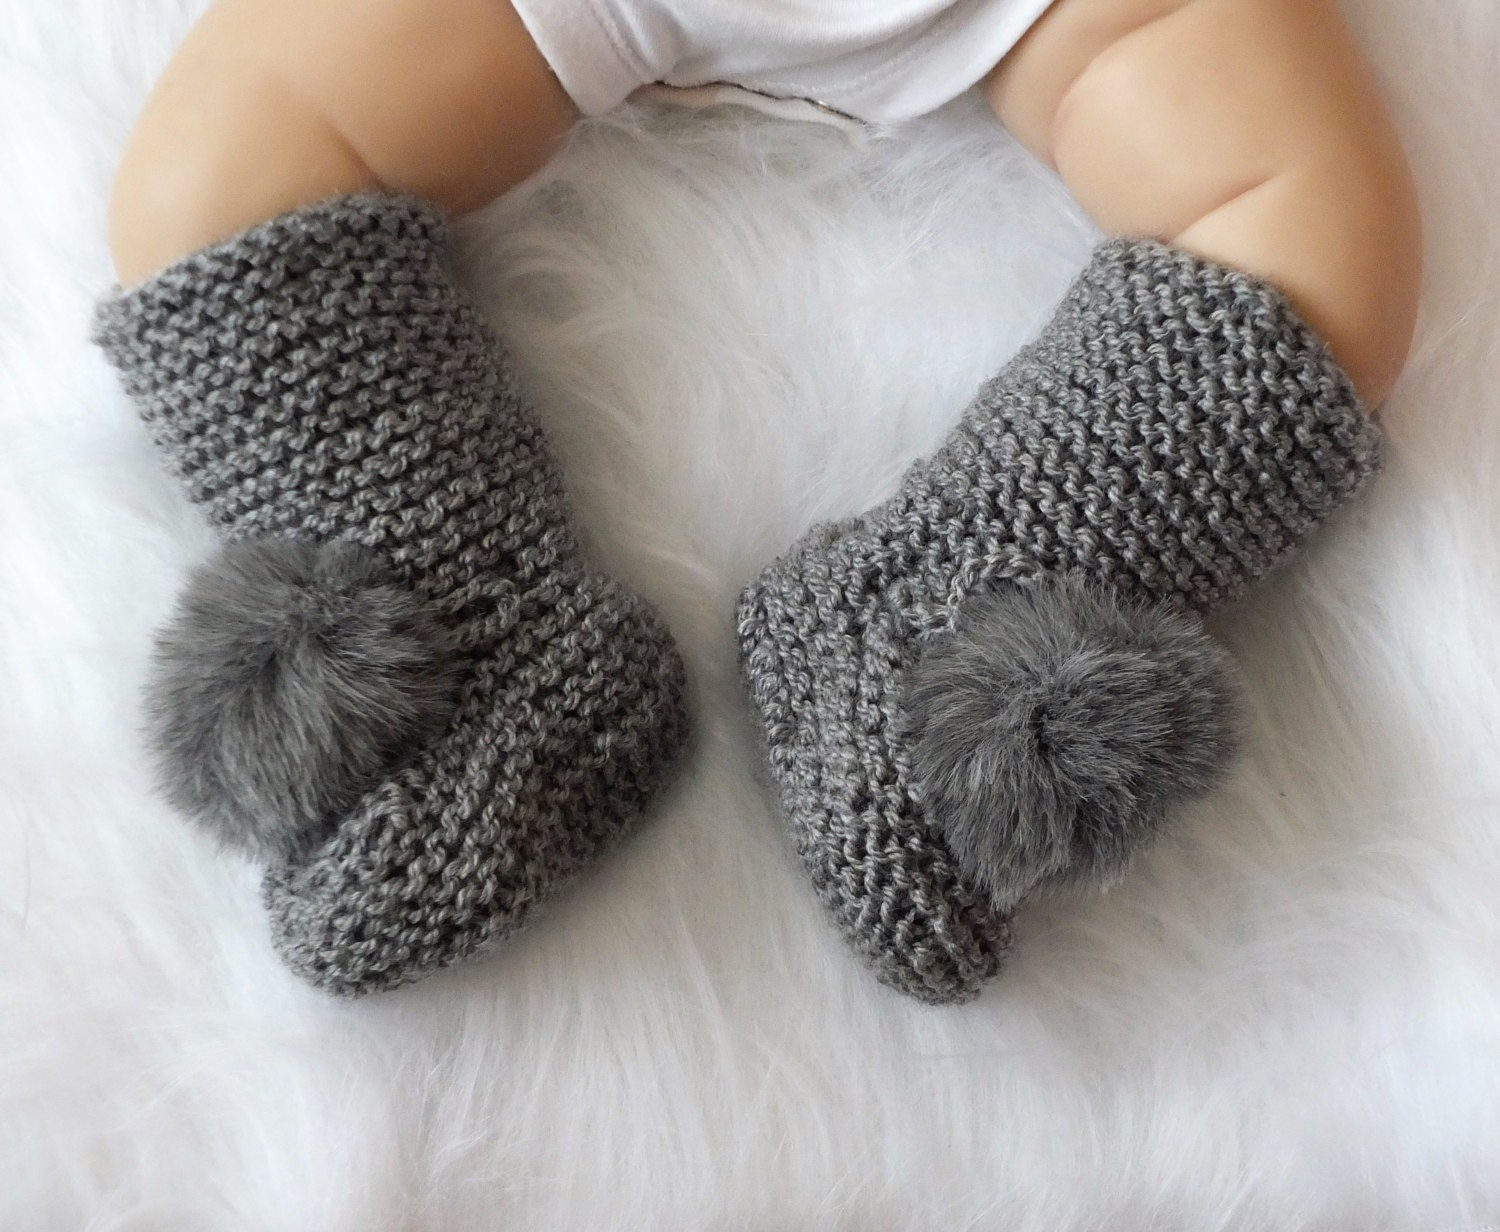 Booties with pom poms - Knitted baby booties - Gray Baby boots ... 95e36de07